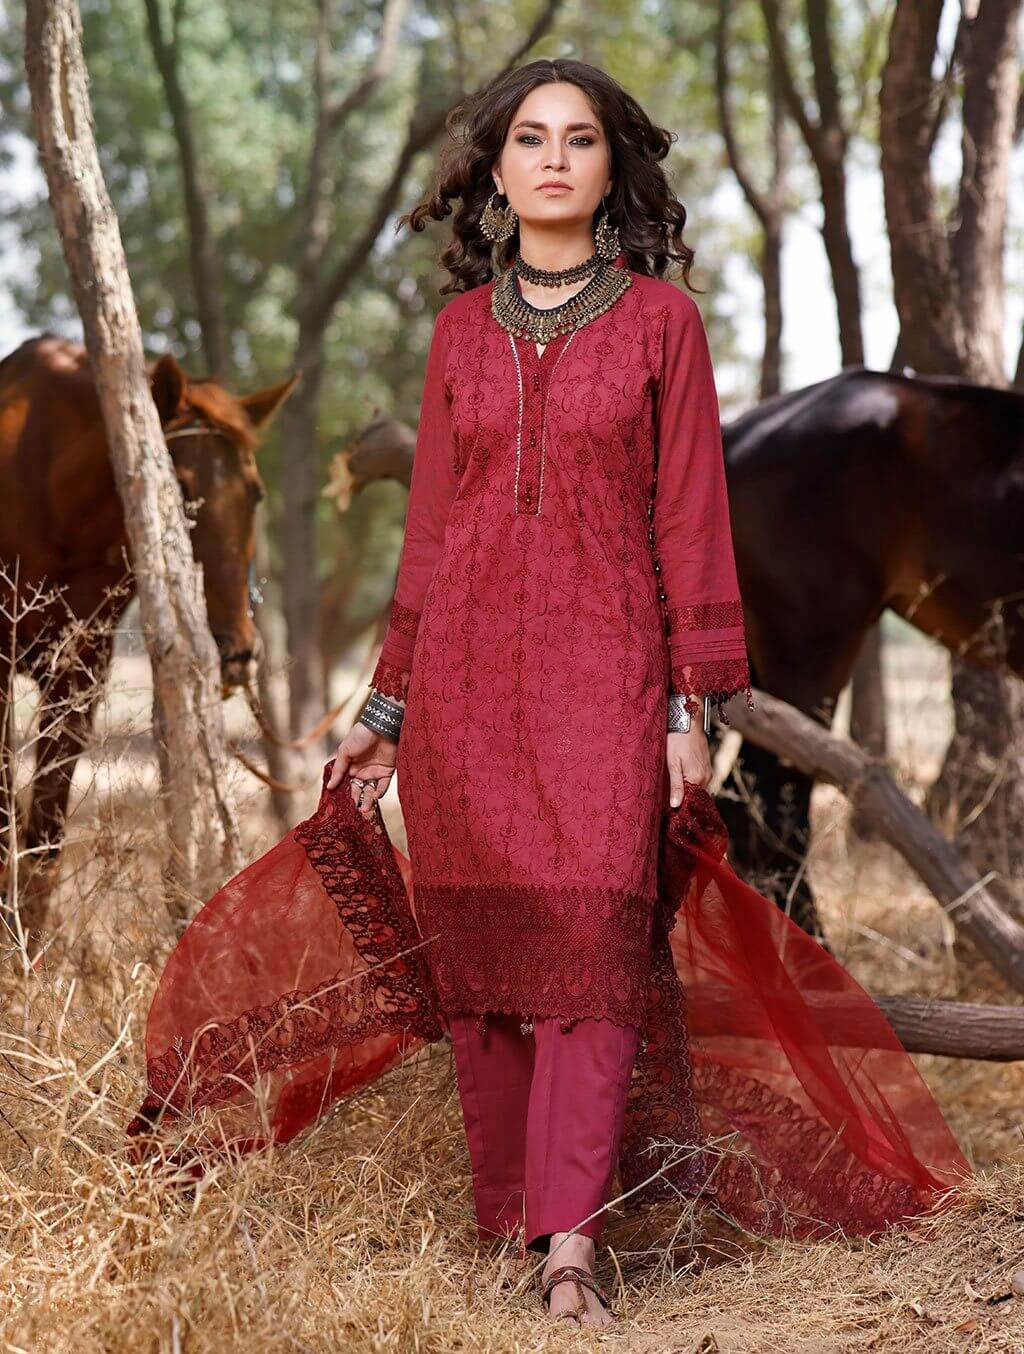 3 Piece Unstitched Embroidered Lawn Suit with Chiffon Dupatta KNE-7020 Khas Lawn 2021 - Volume 2 FASUNSLAD